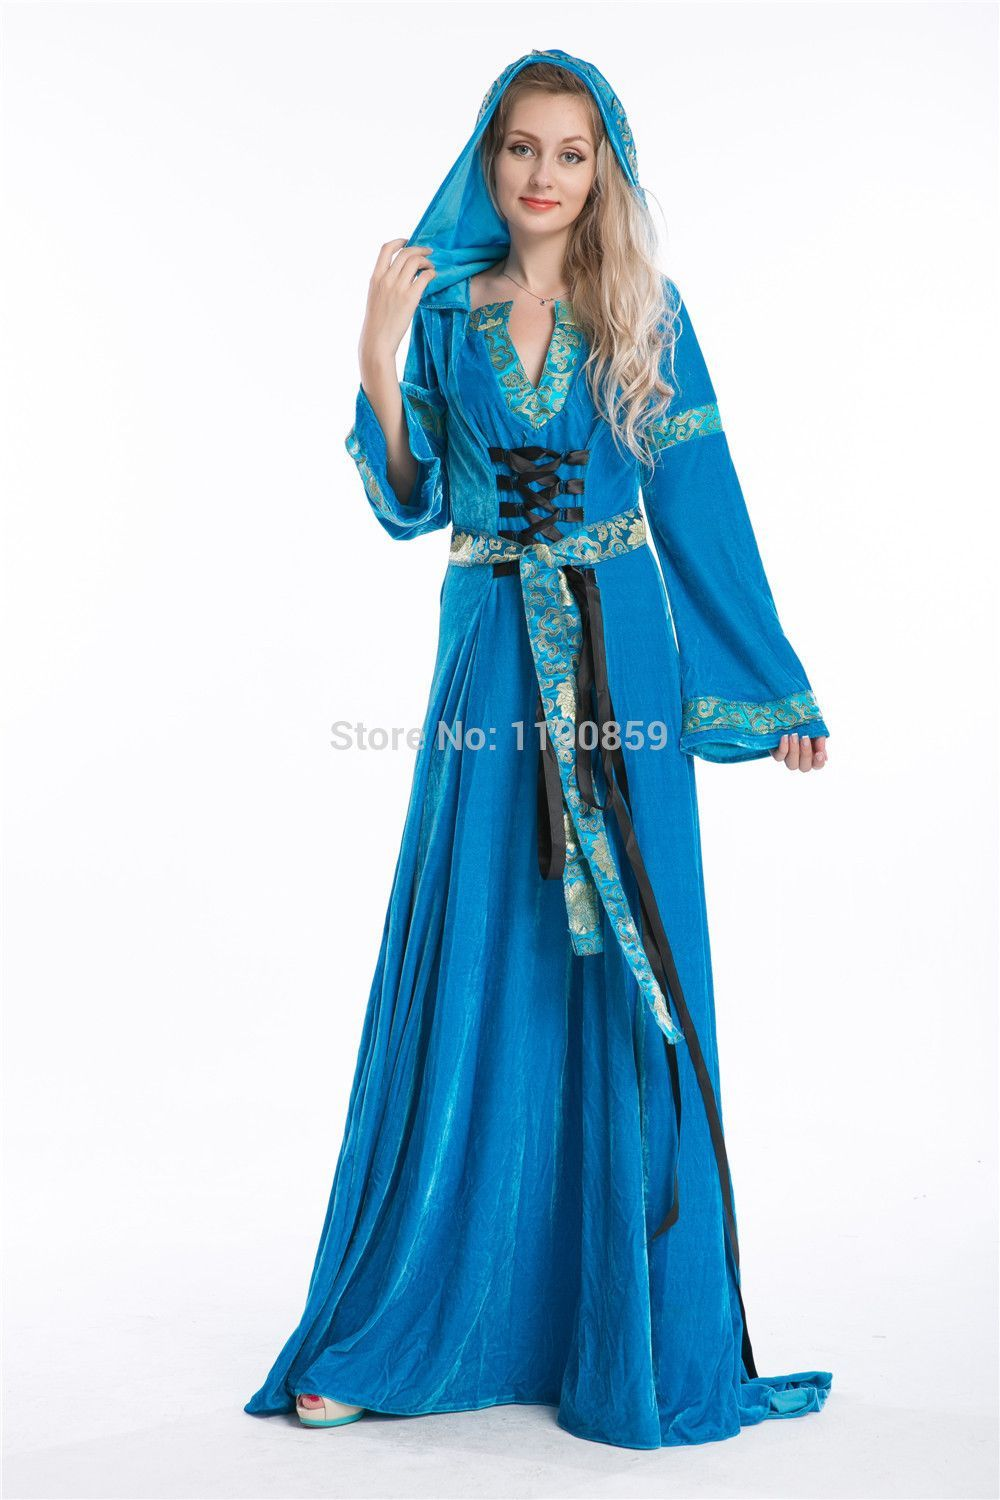 Free shipping Blue Medieval Fancy Dress Renaissance Gown Game of ...